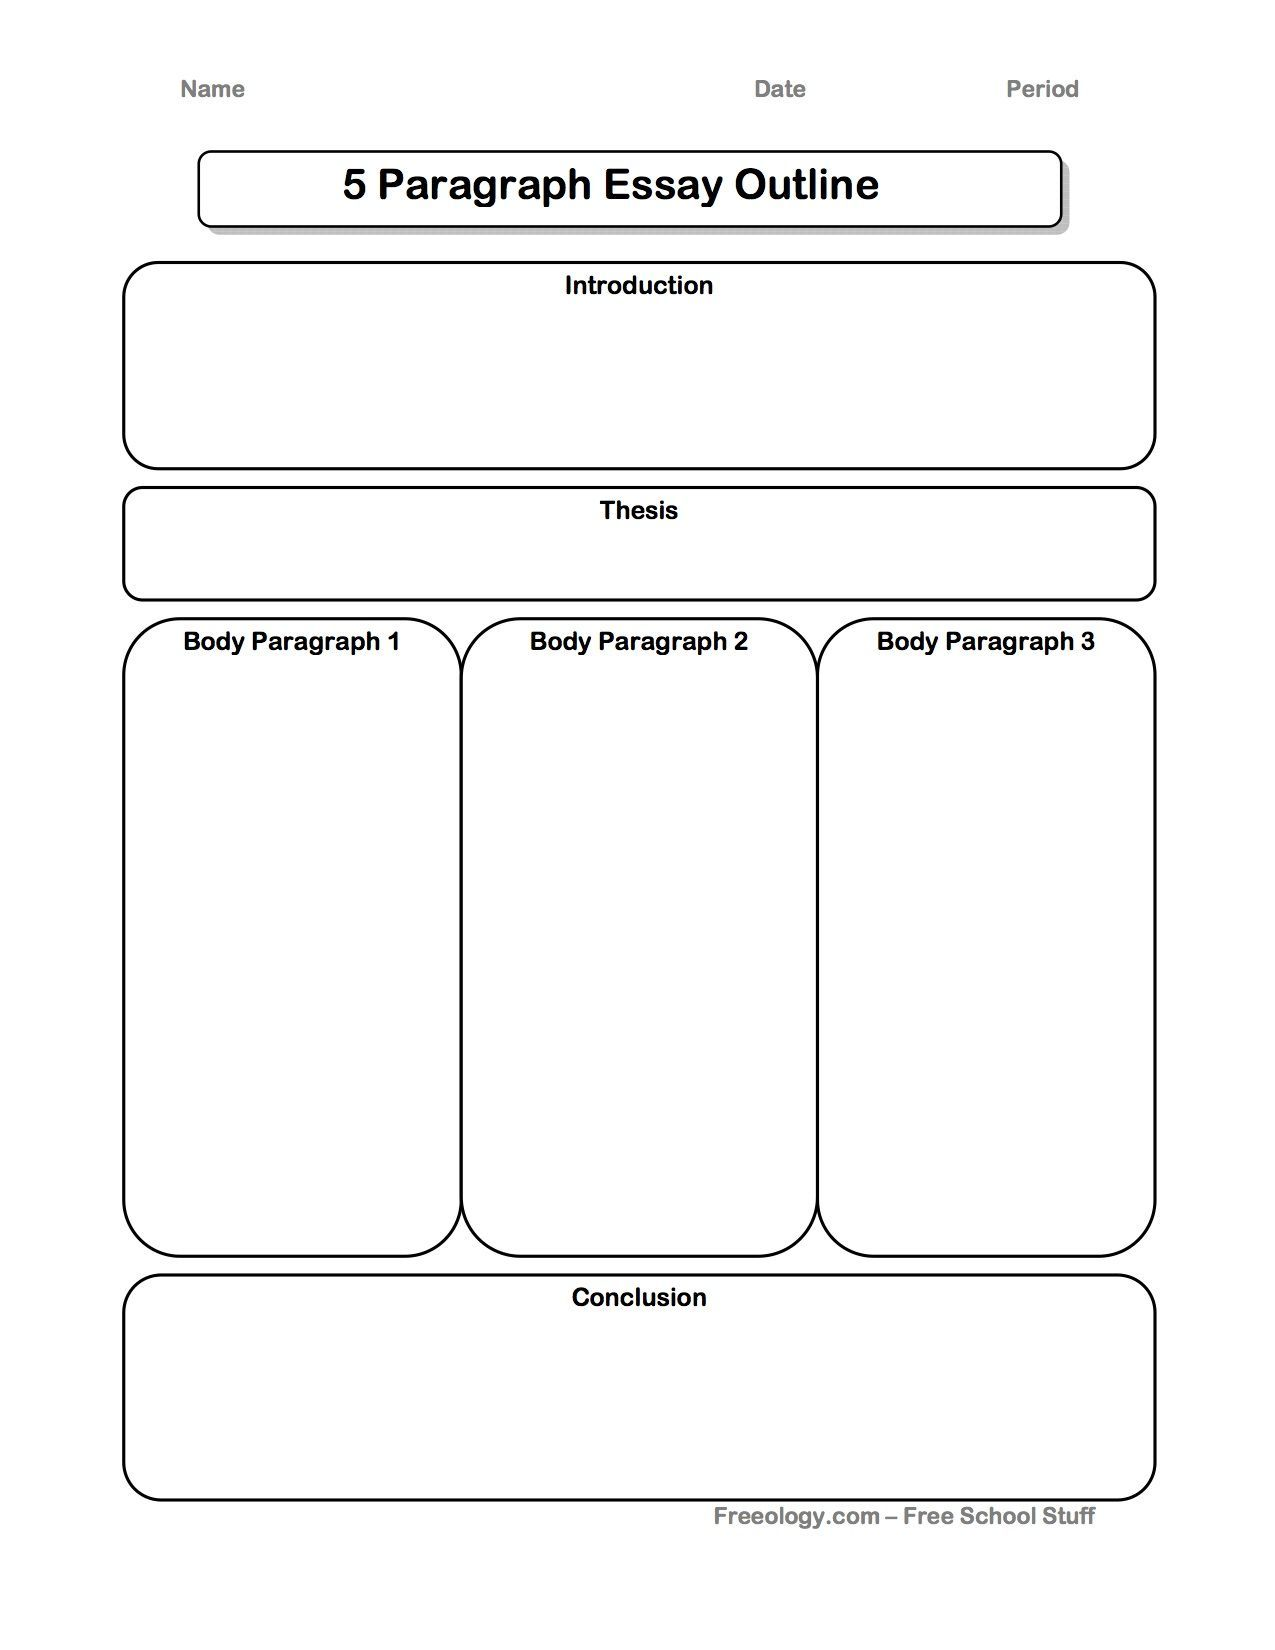 Essay Writing Template For Elementary Essay Writing In Elementary Middle And High Scho Expository Essay Graphic Organizer Expository Essay Expository Writing [ 1650 x 1275 Pixel ]